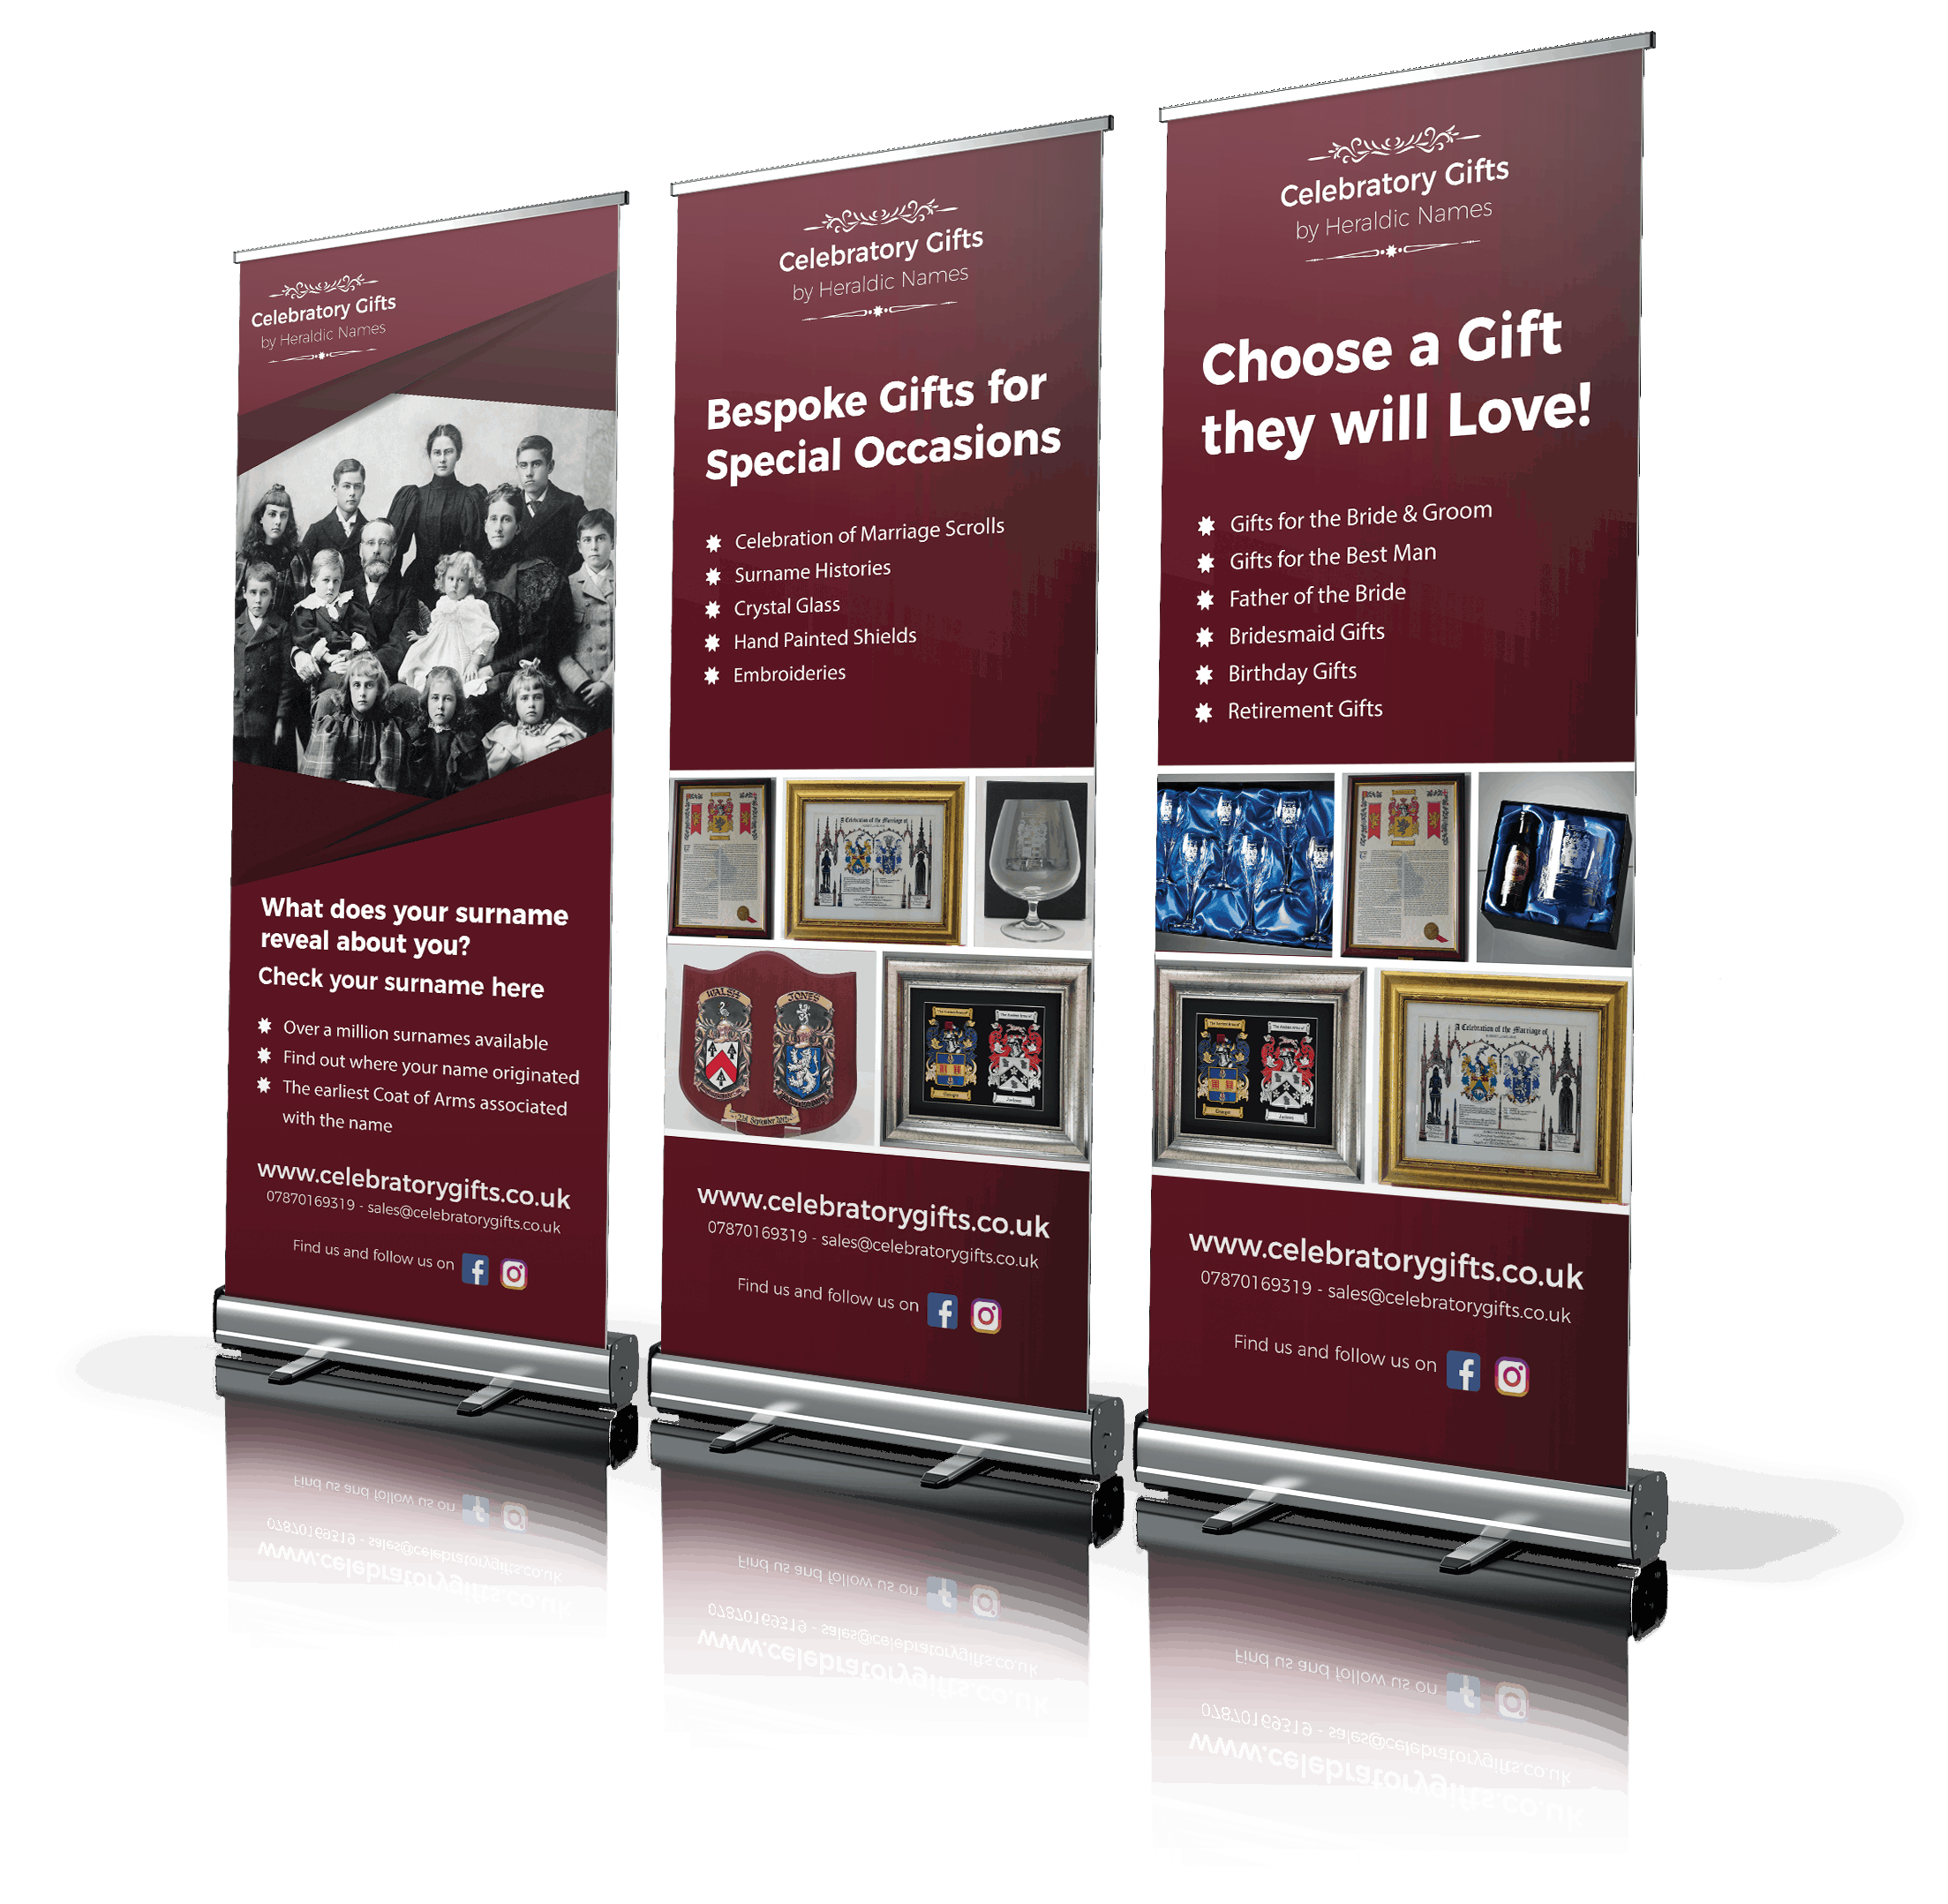 Celebratory Gifts - Promoting the business with a range of marketing materials